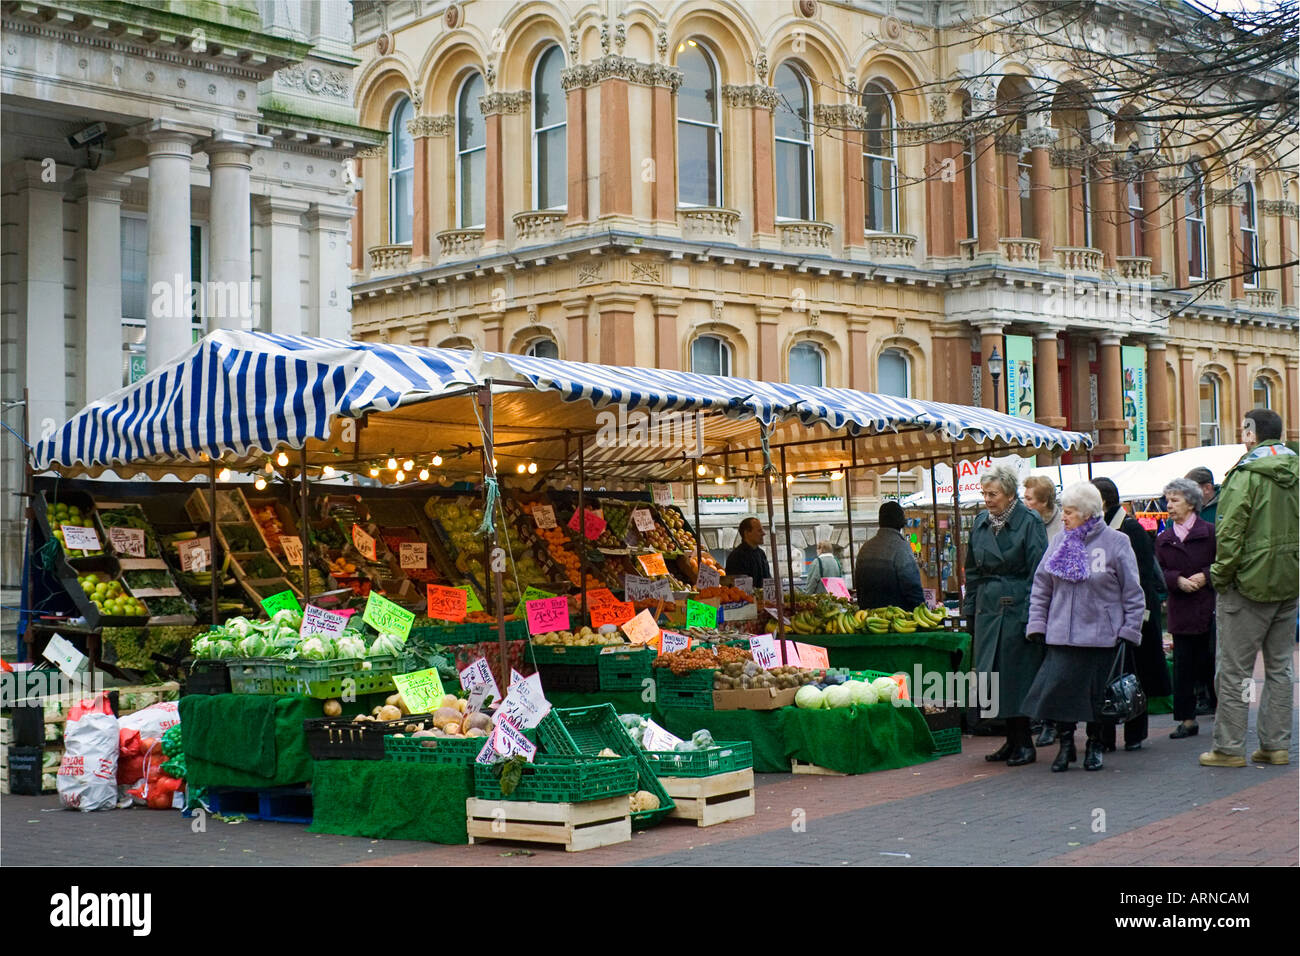 Ipswich Market day - Stock Image